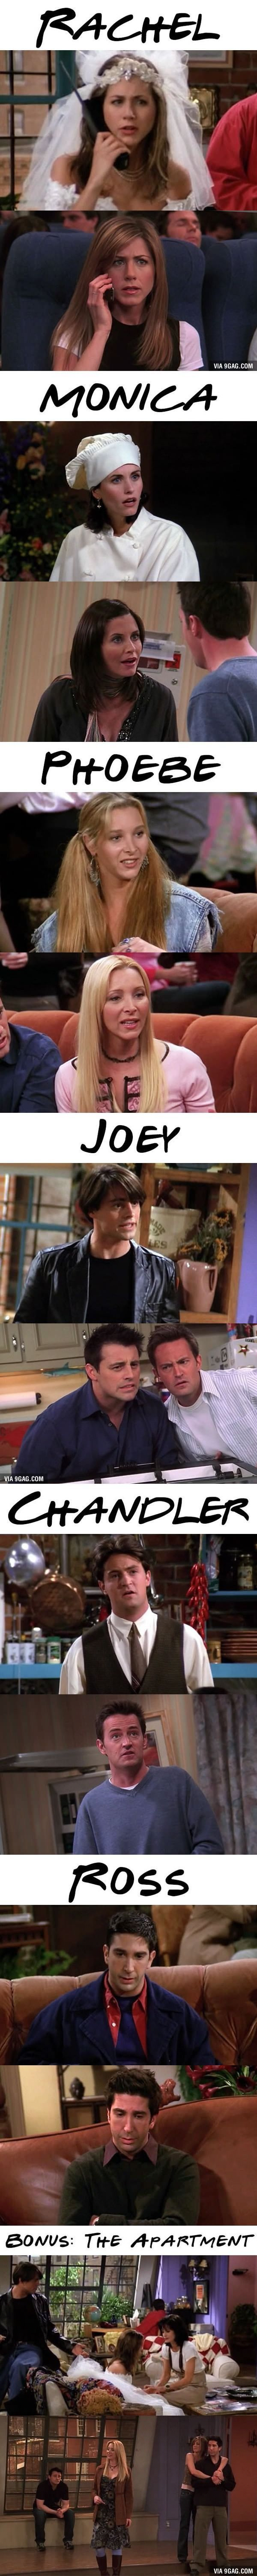 Friends; the first episode vs. the last